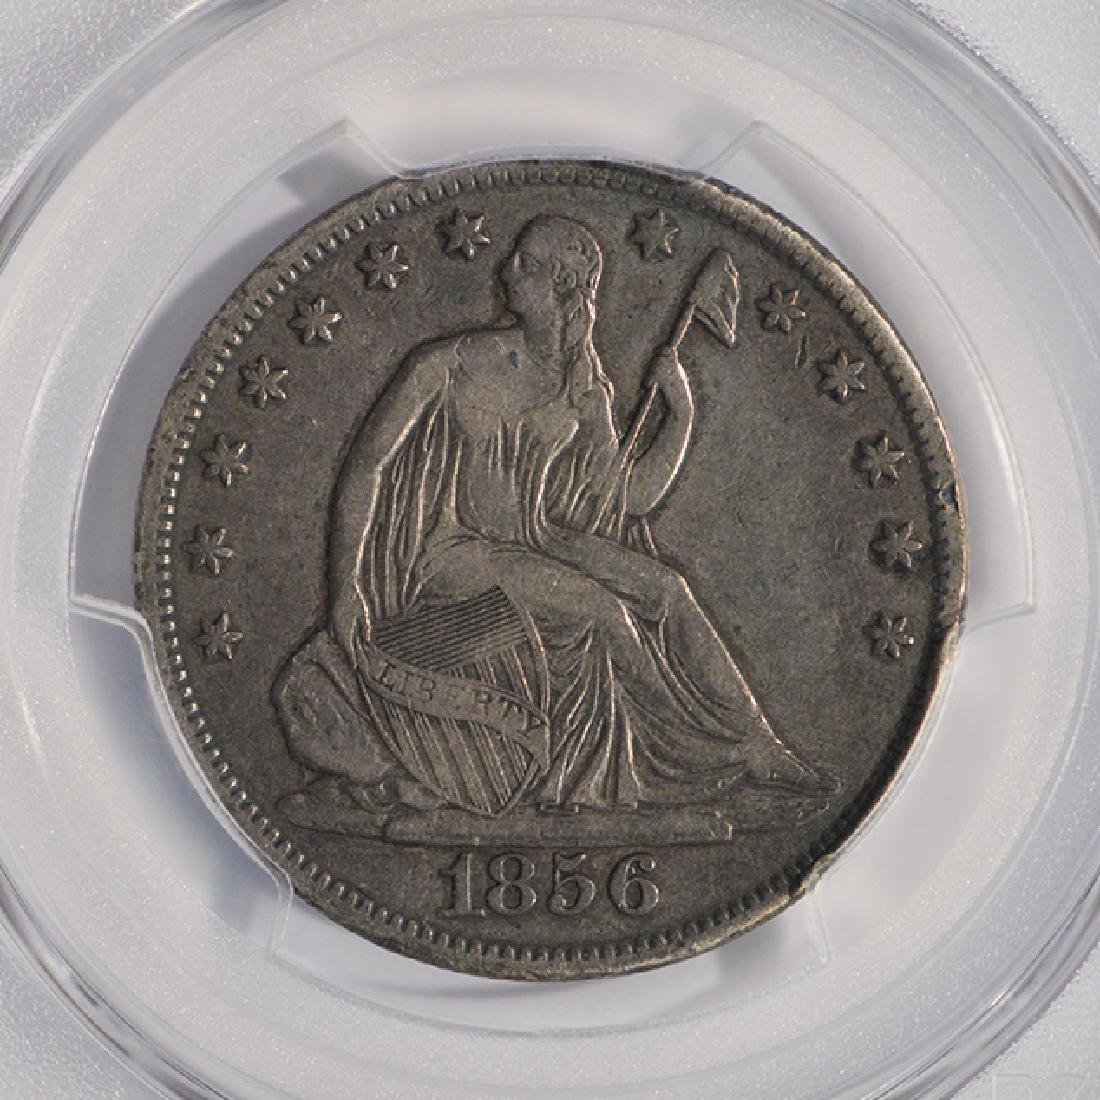 1856-S Liberty Seated Half Dollar Coin PCGS VF25 - 3